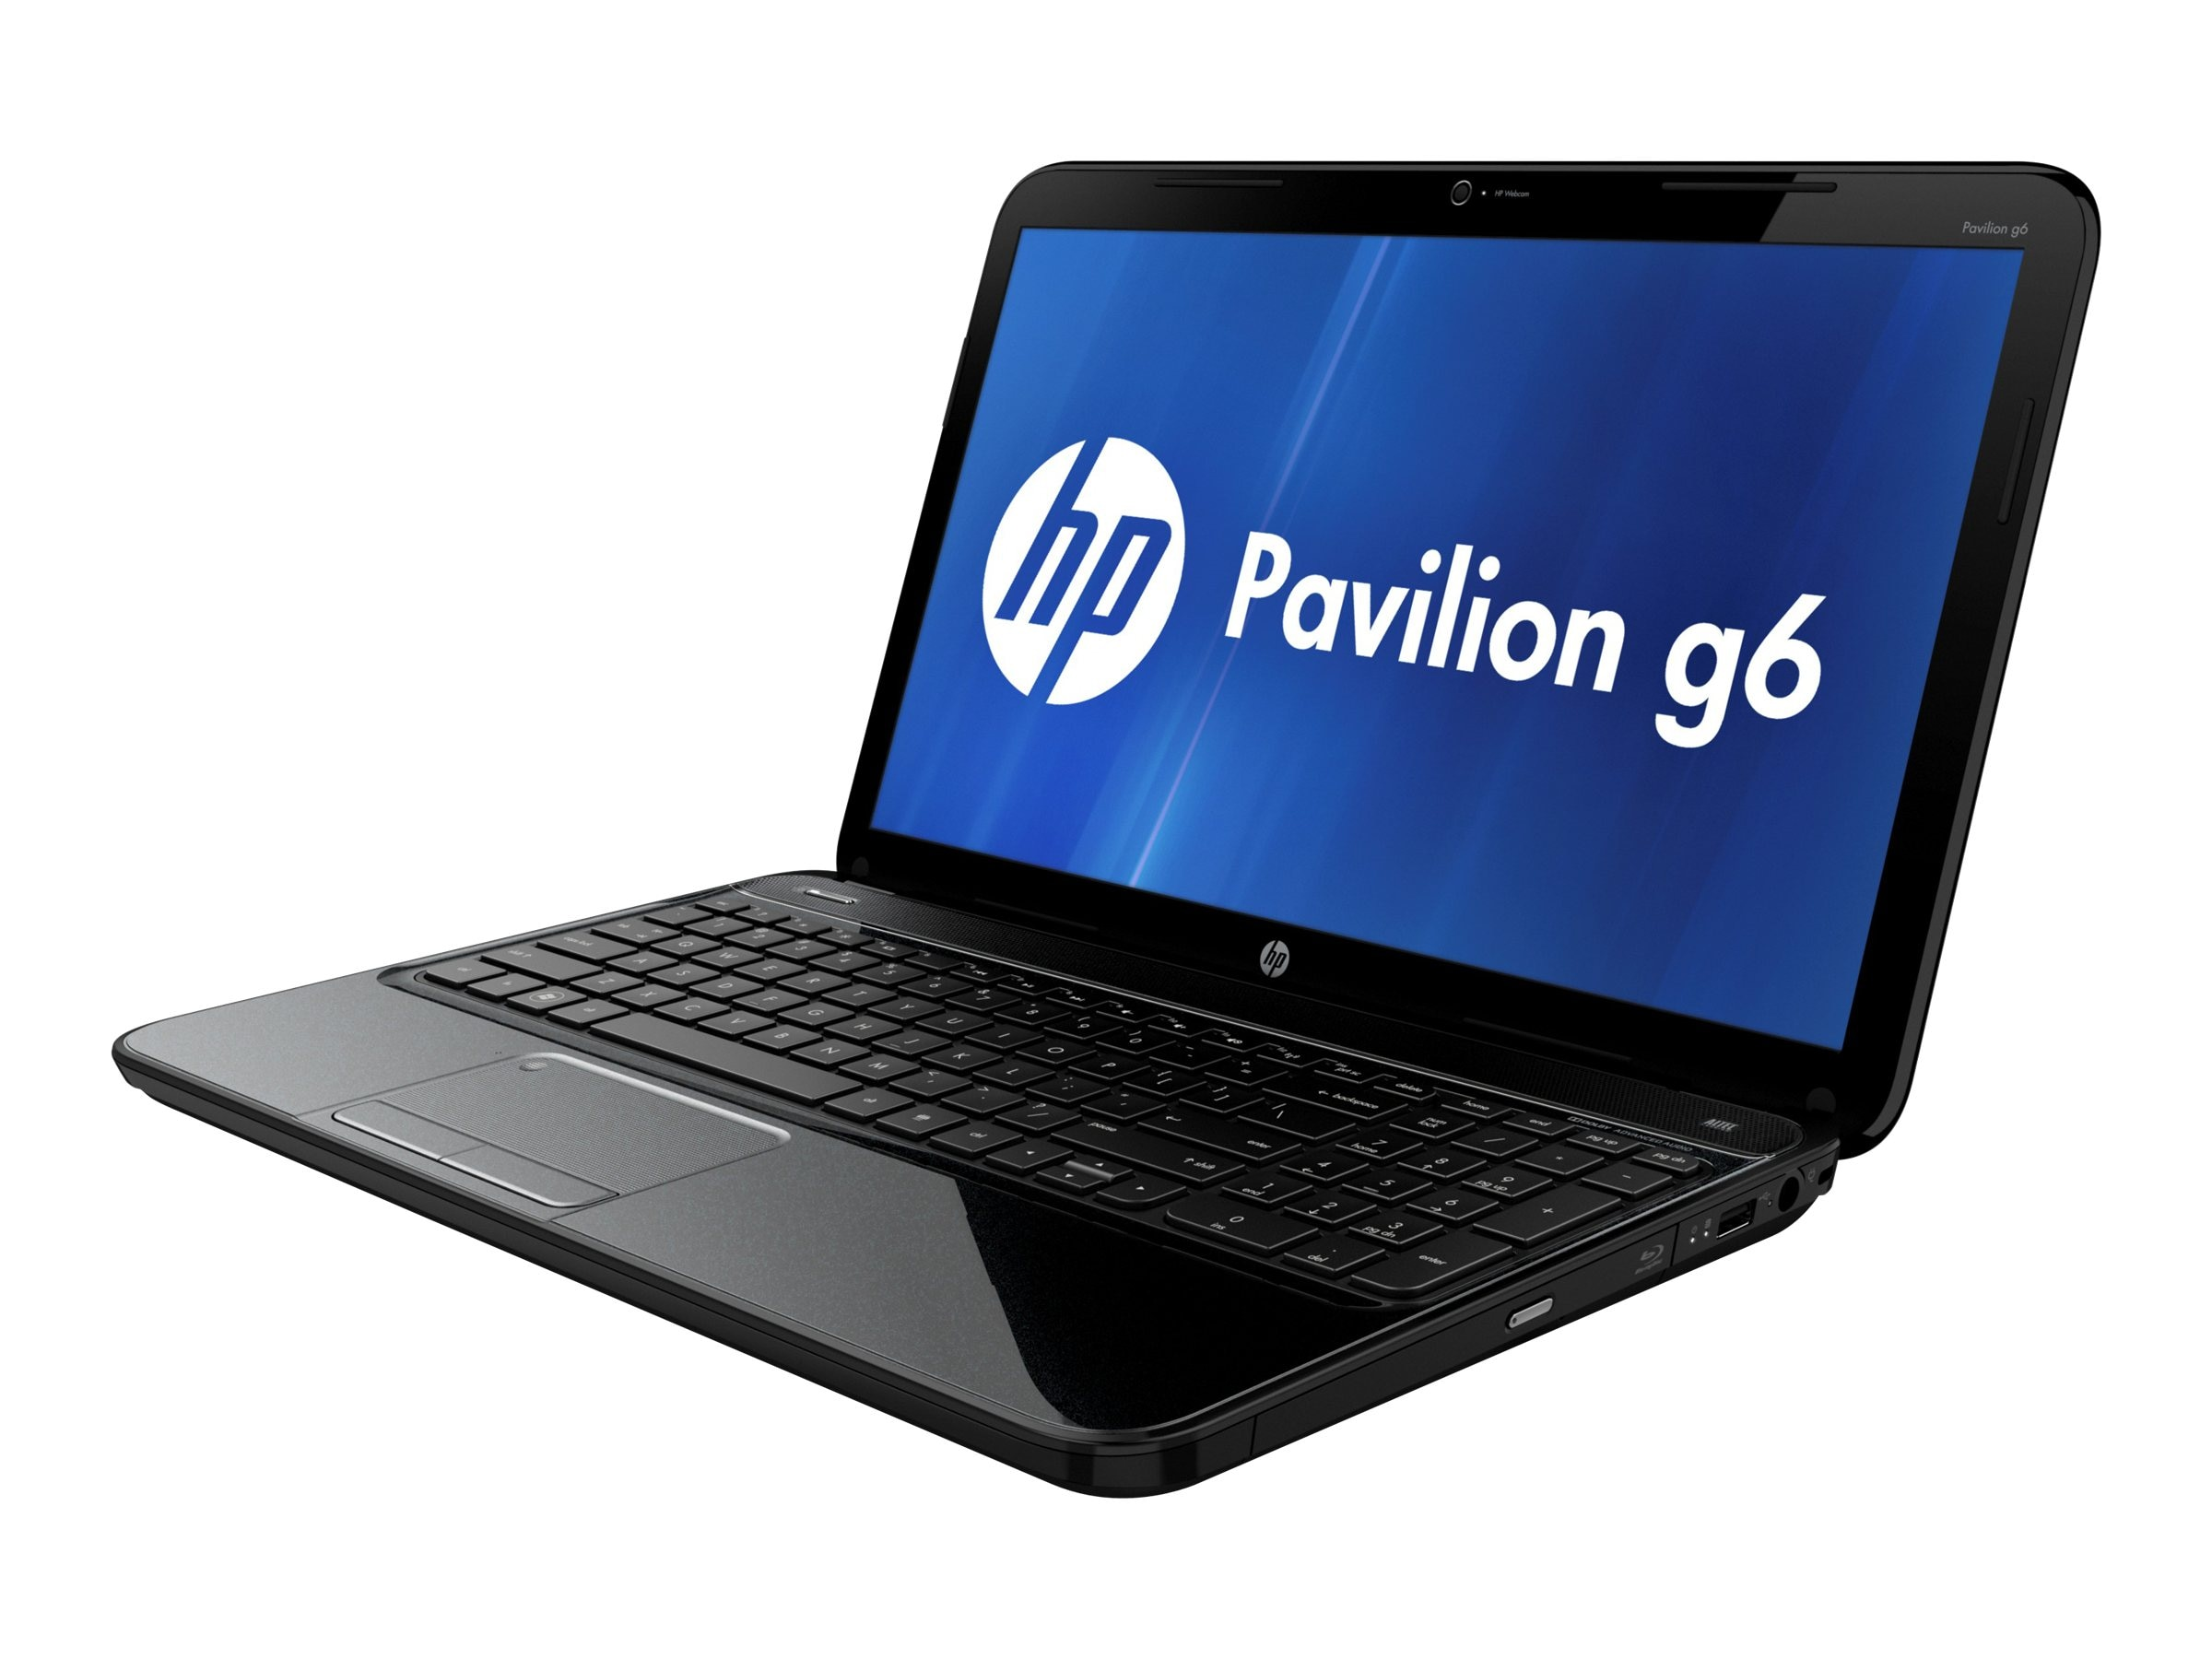 HP Pavilion G6-2210us : 2.5GHz A4-Series 15.6in display